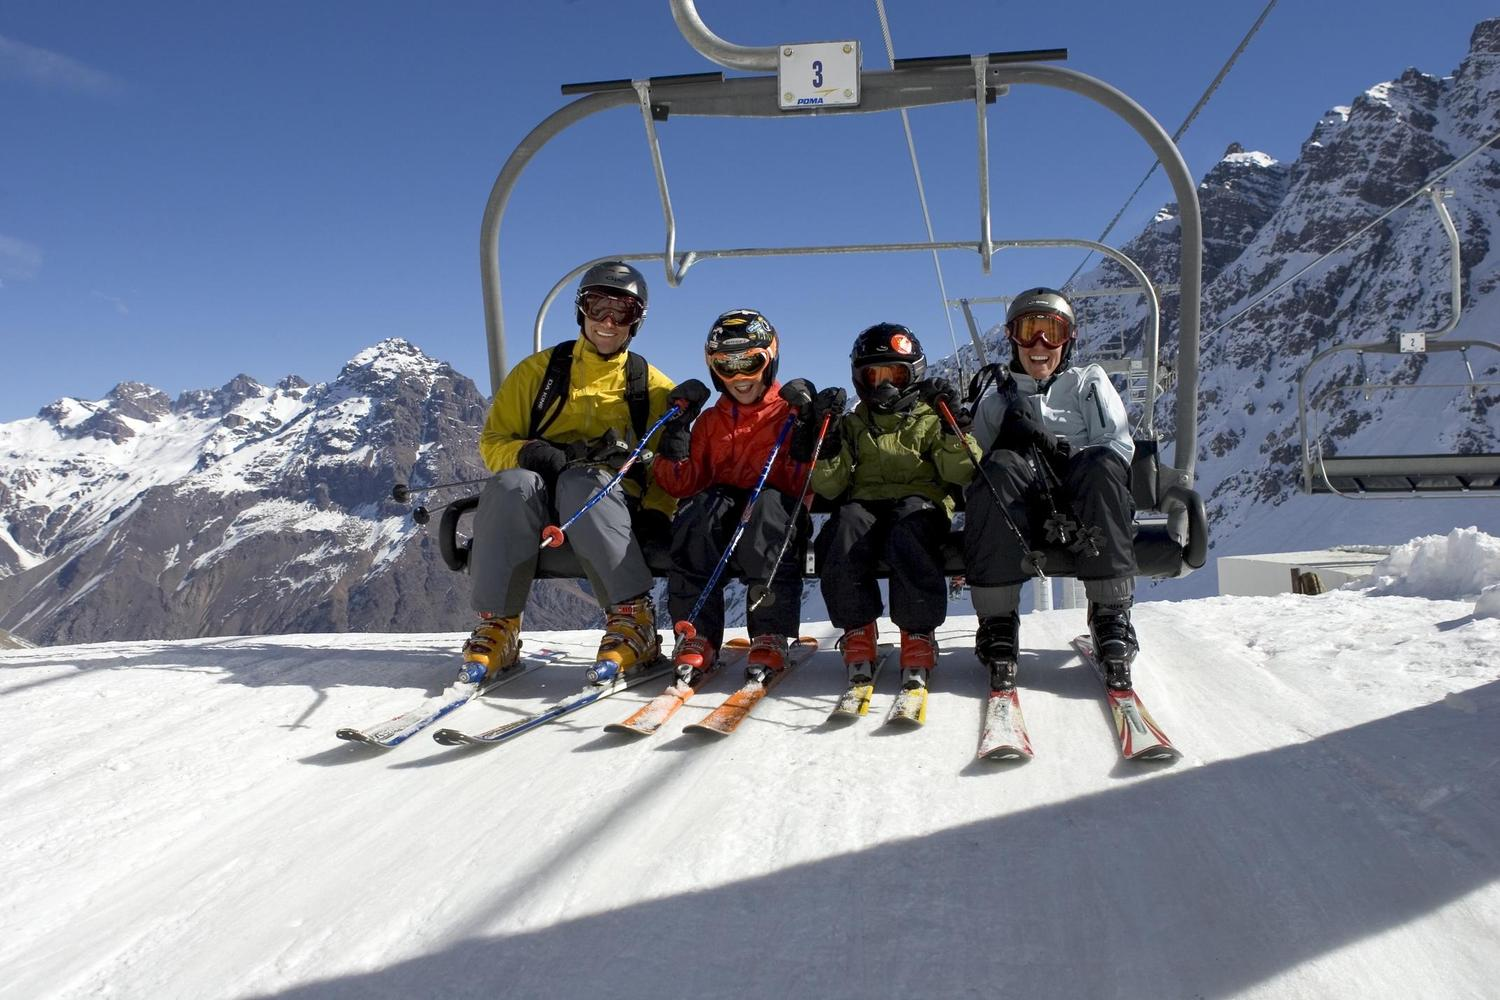 Happy families on the lifts at Portillo